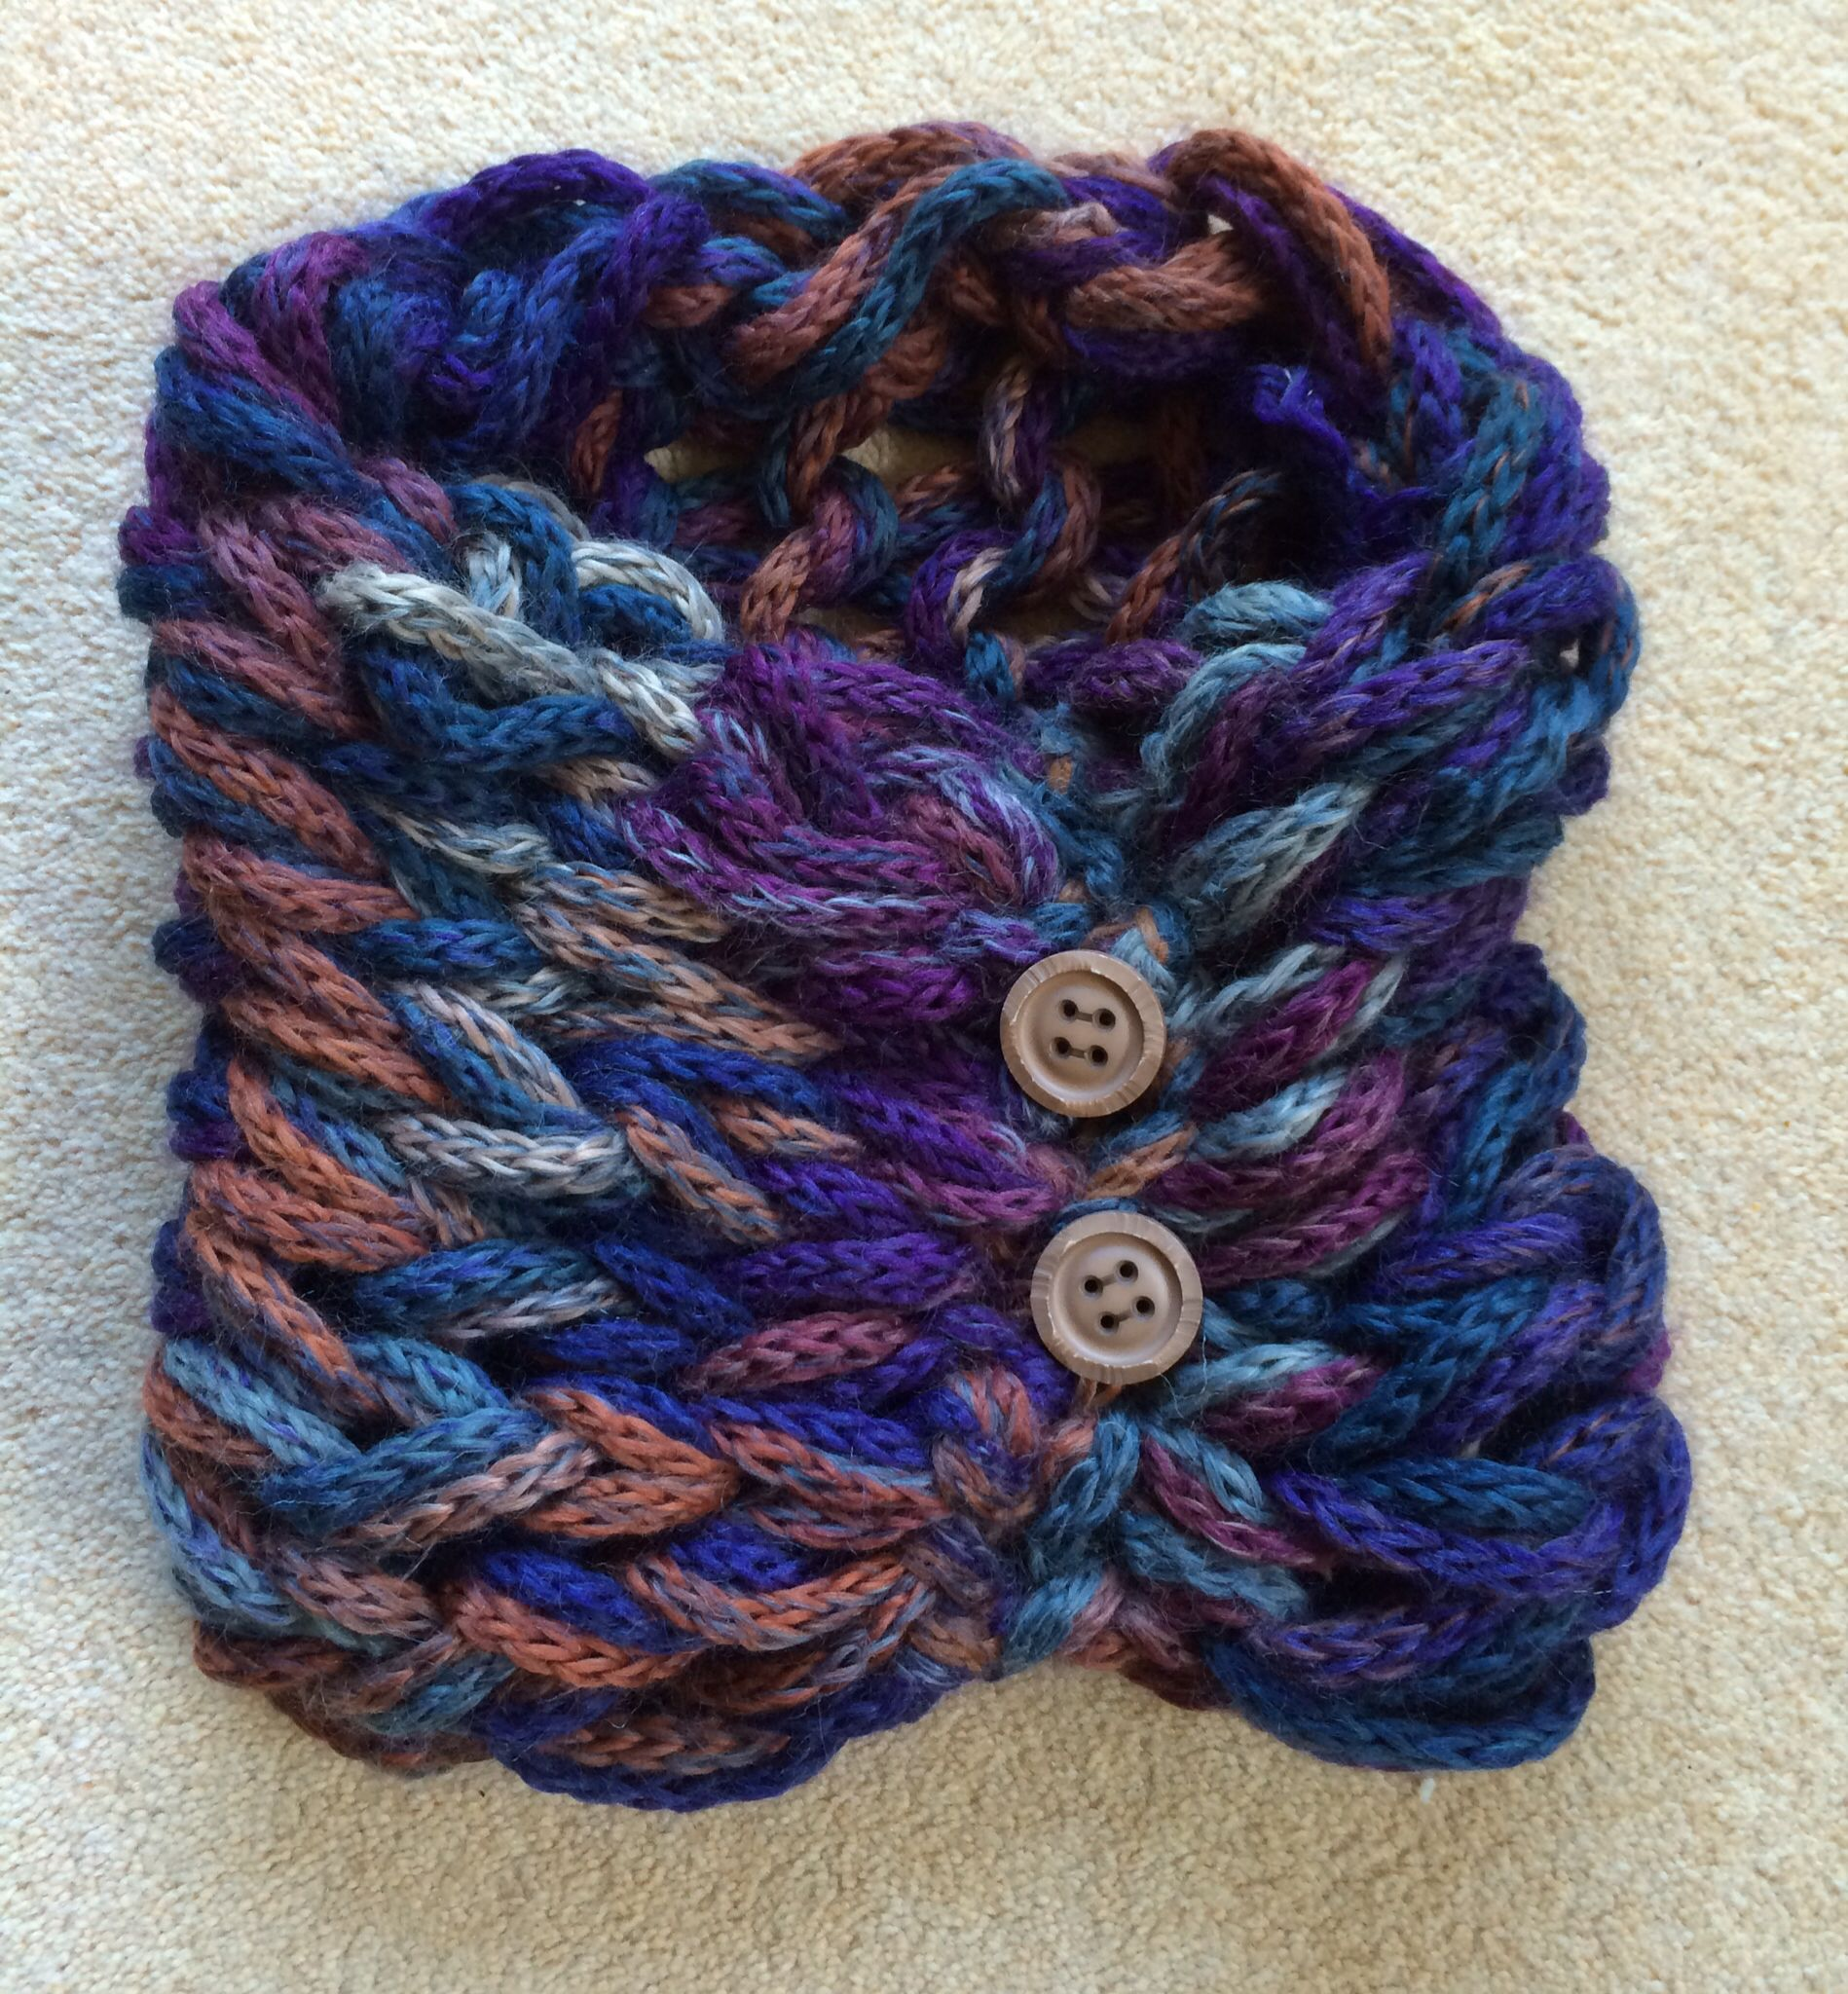 Arm knitted cowl | Crotchet patterns, Yarn